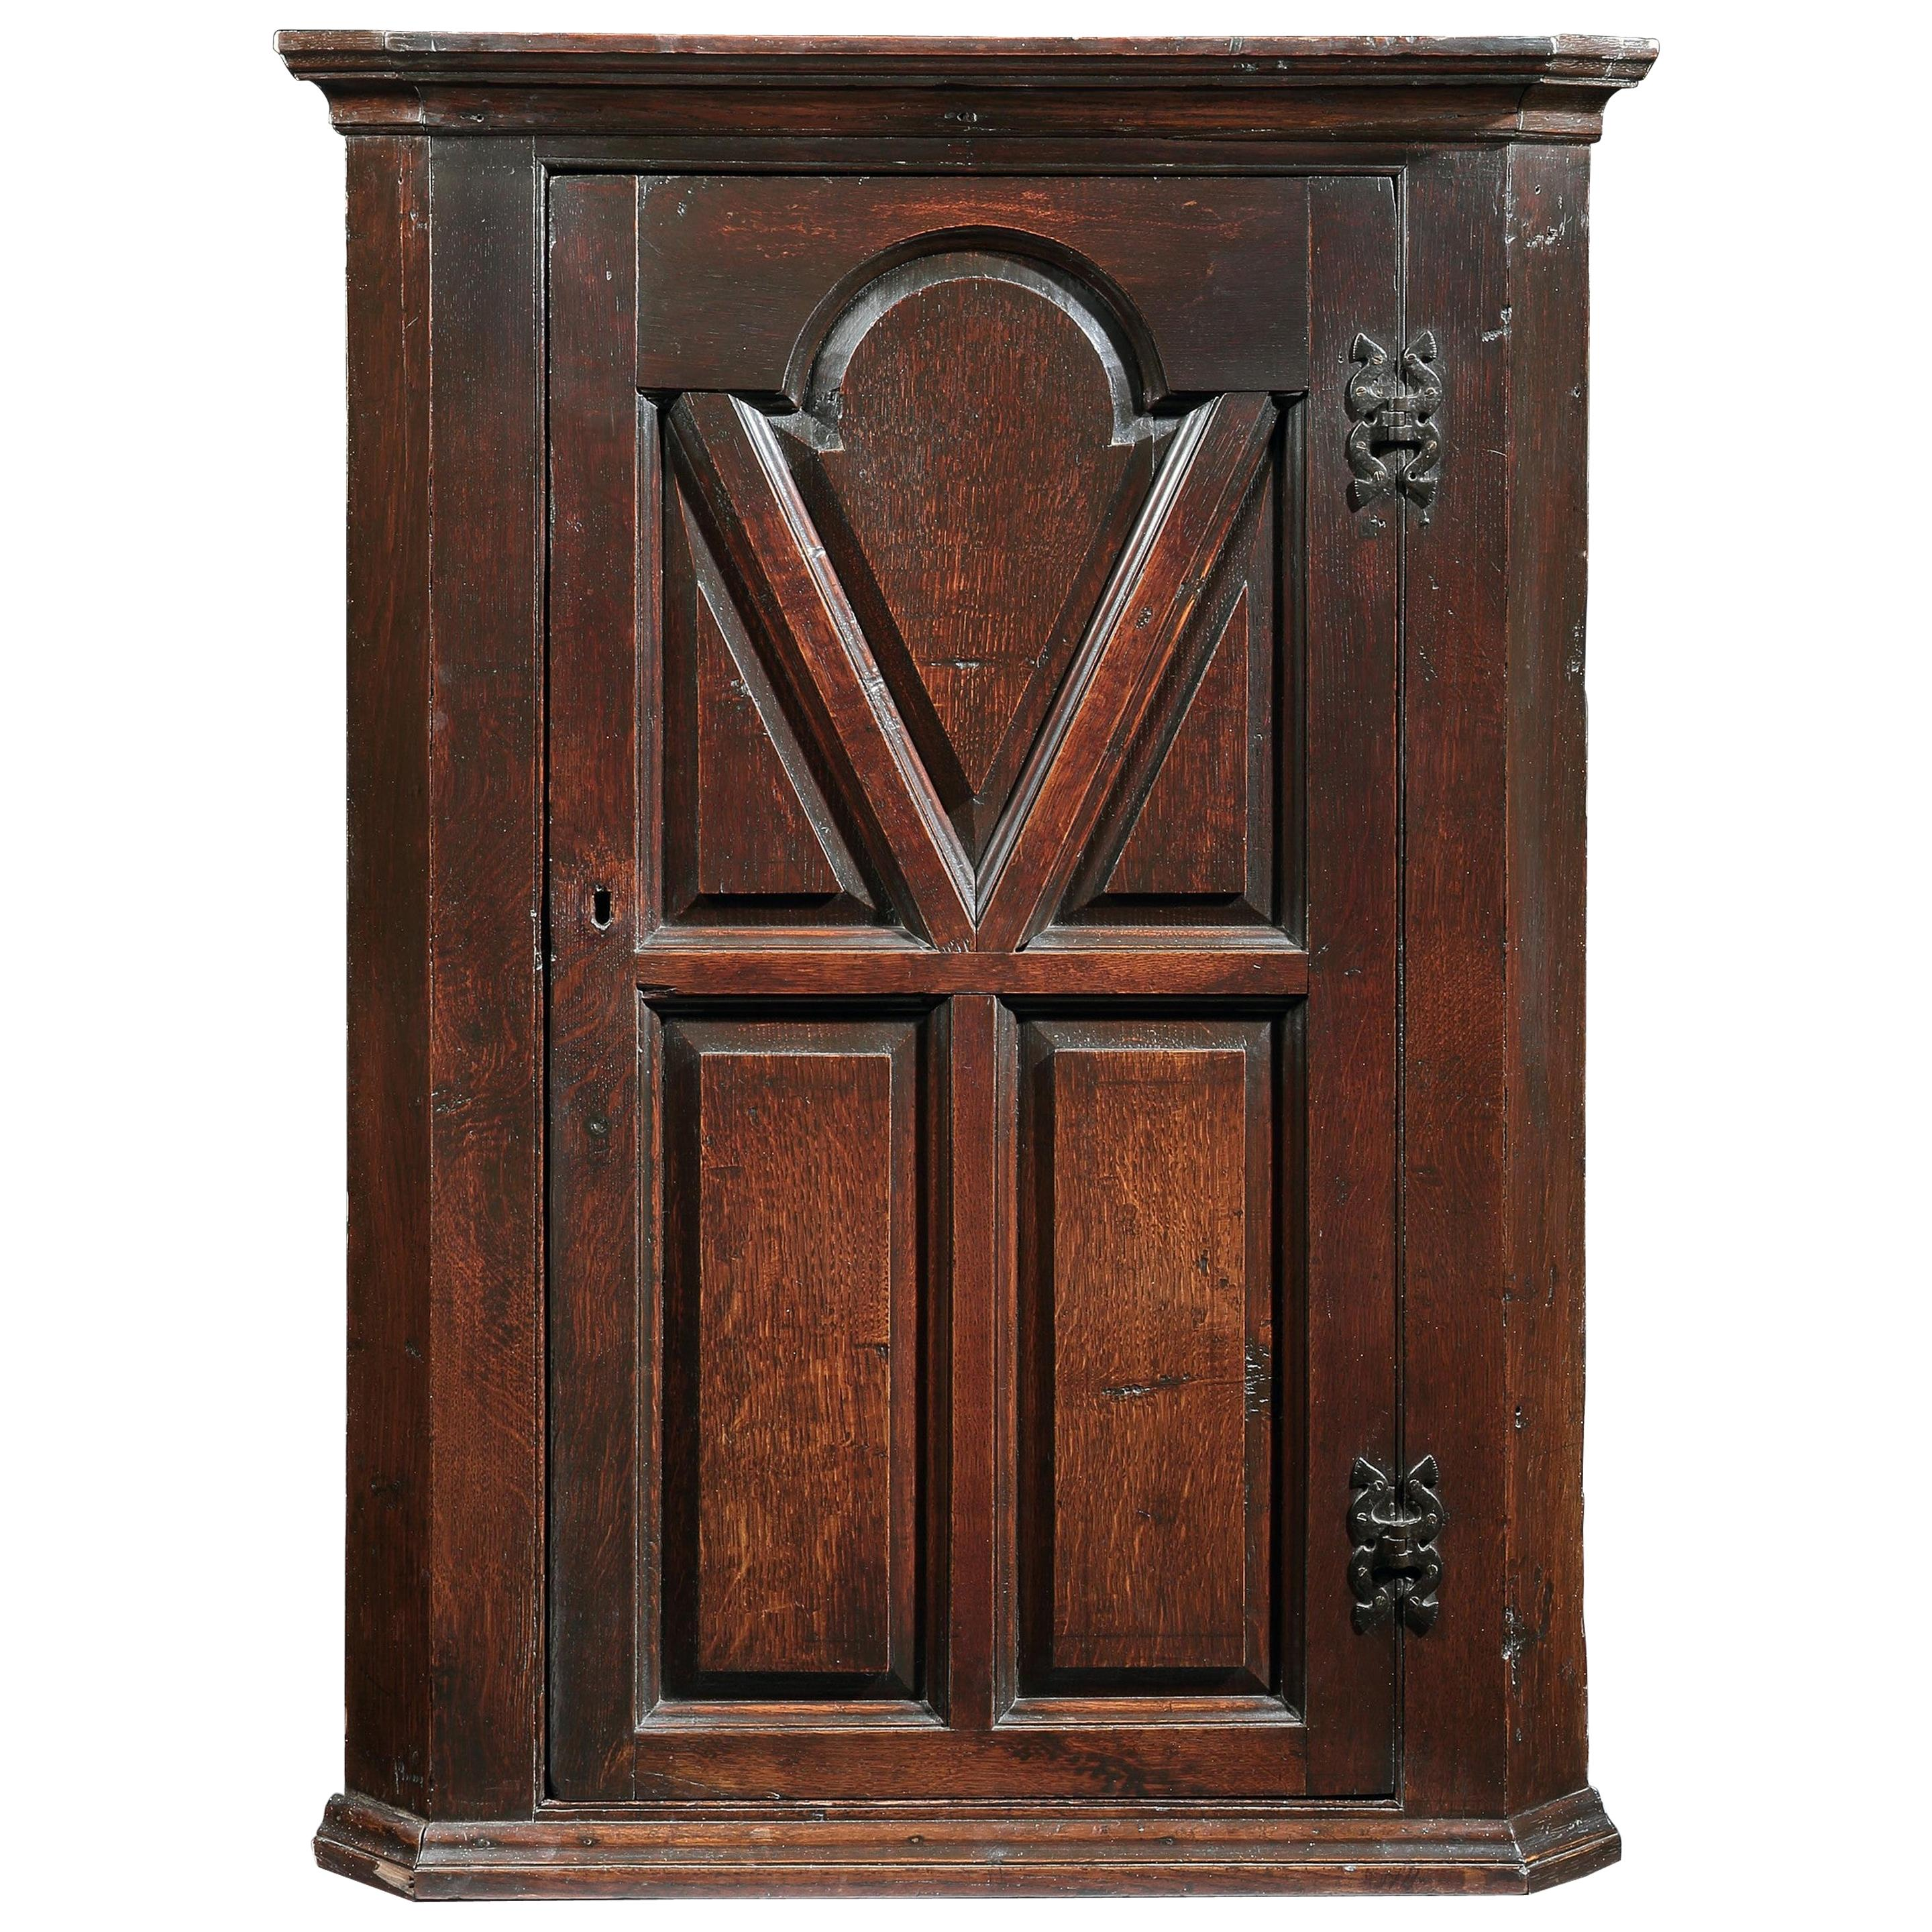 Corner Cupboard, 17th Centuy, English, William & Mary, Vernacular, Oak